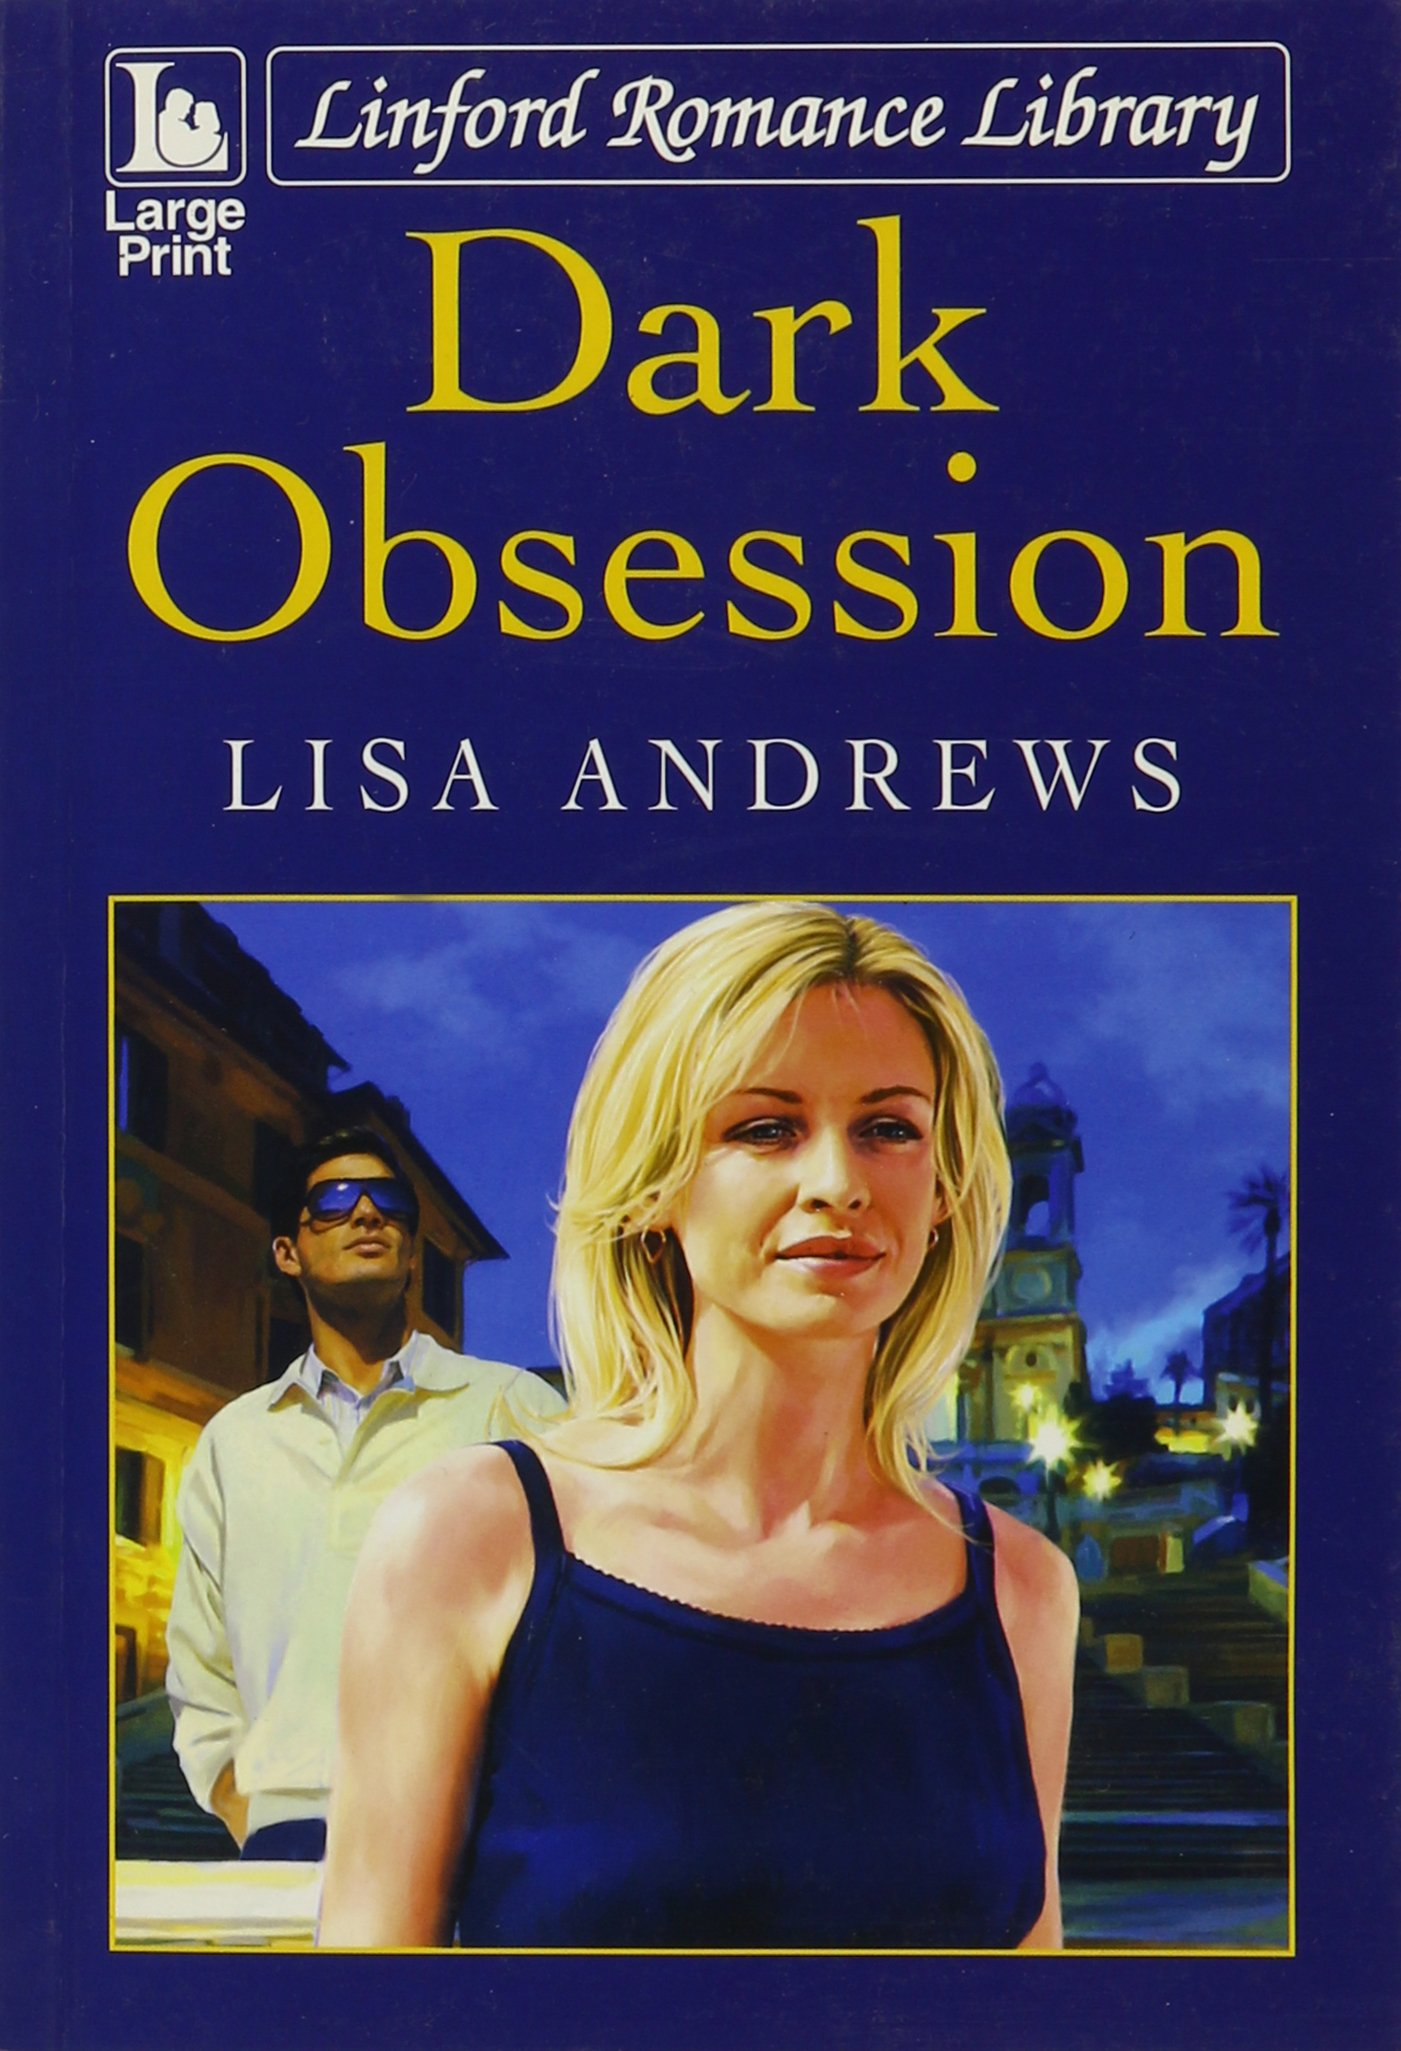 Dark Obsession (Linford Romance Library): Amazon co uk: Lisa